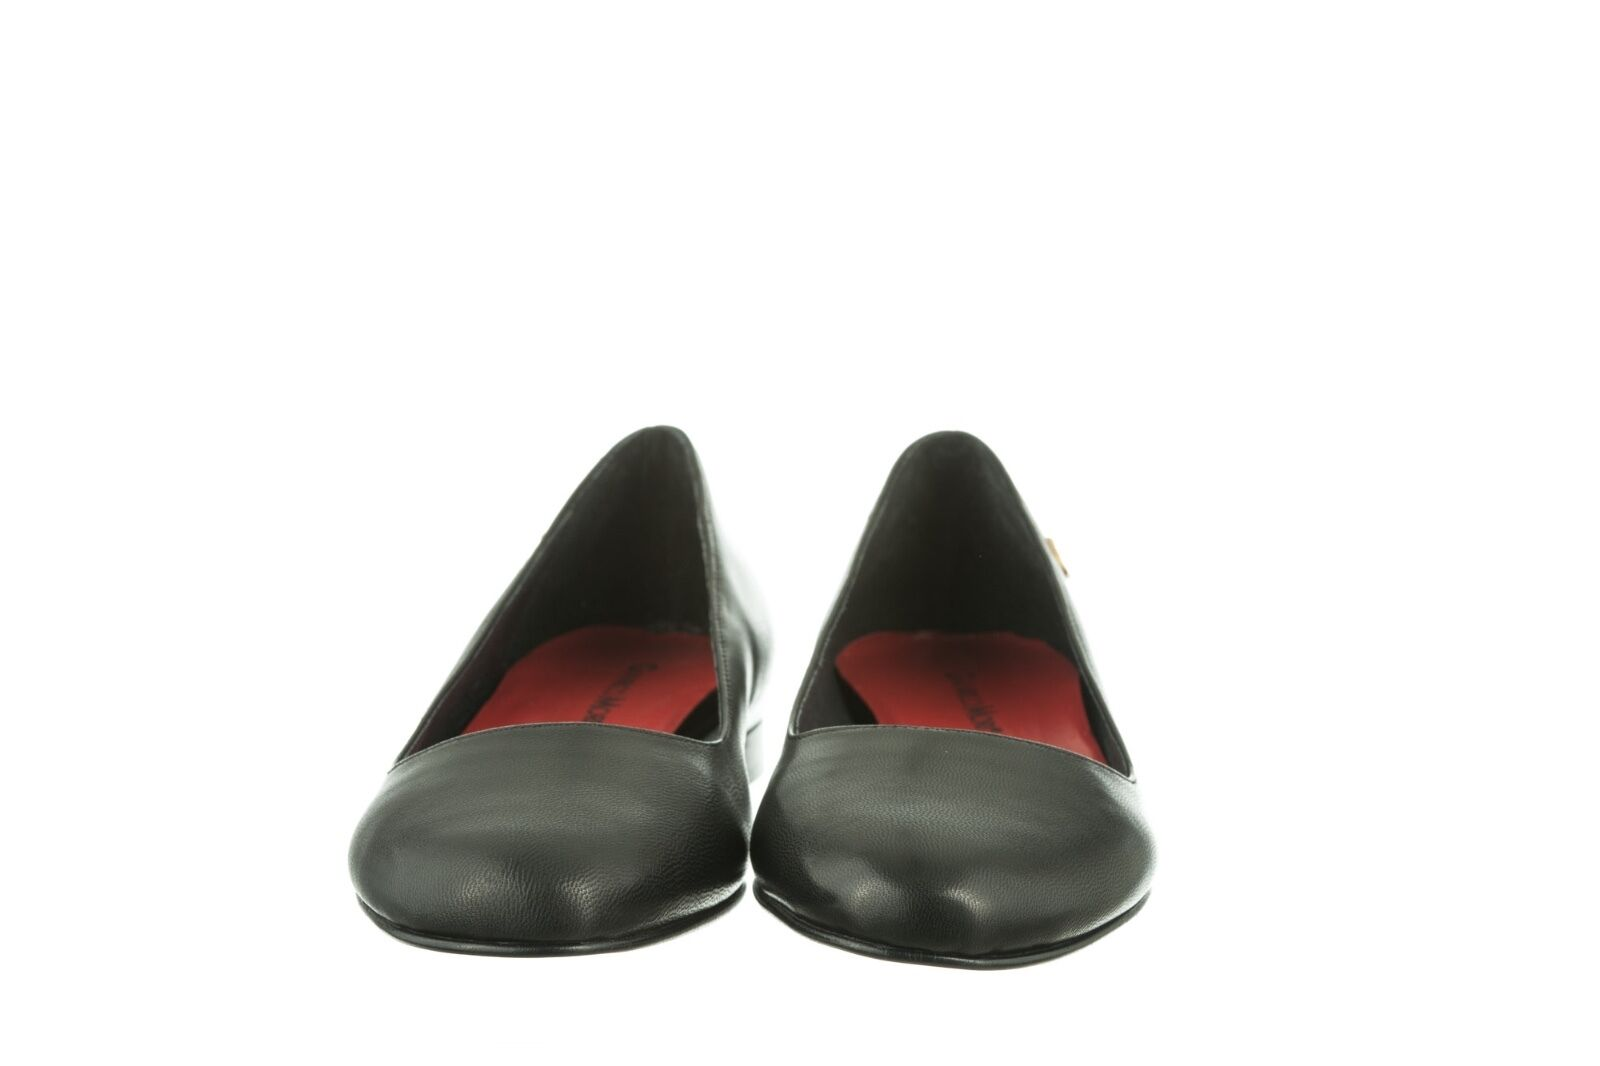 MORI MORI MORI MADE IN ITALY NEW FLATS chaussures chaussures BALLERINA REAL LEATHER noir noir 37 507c87